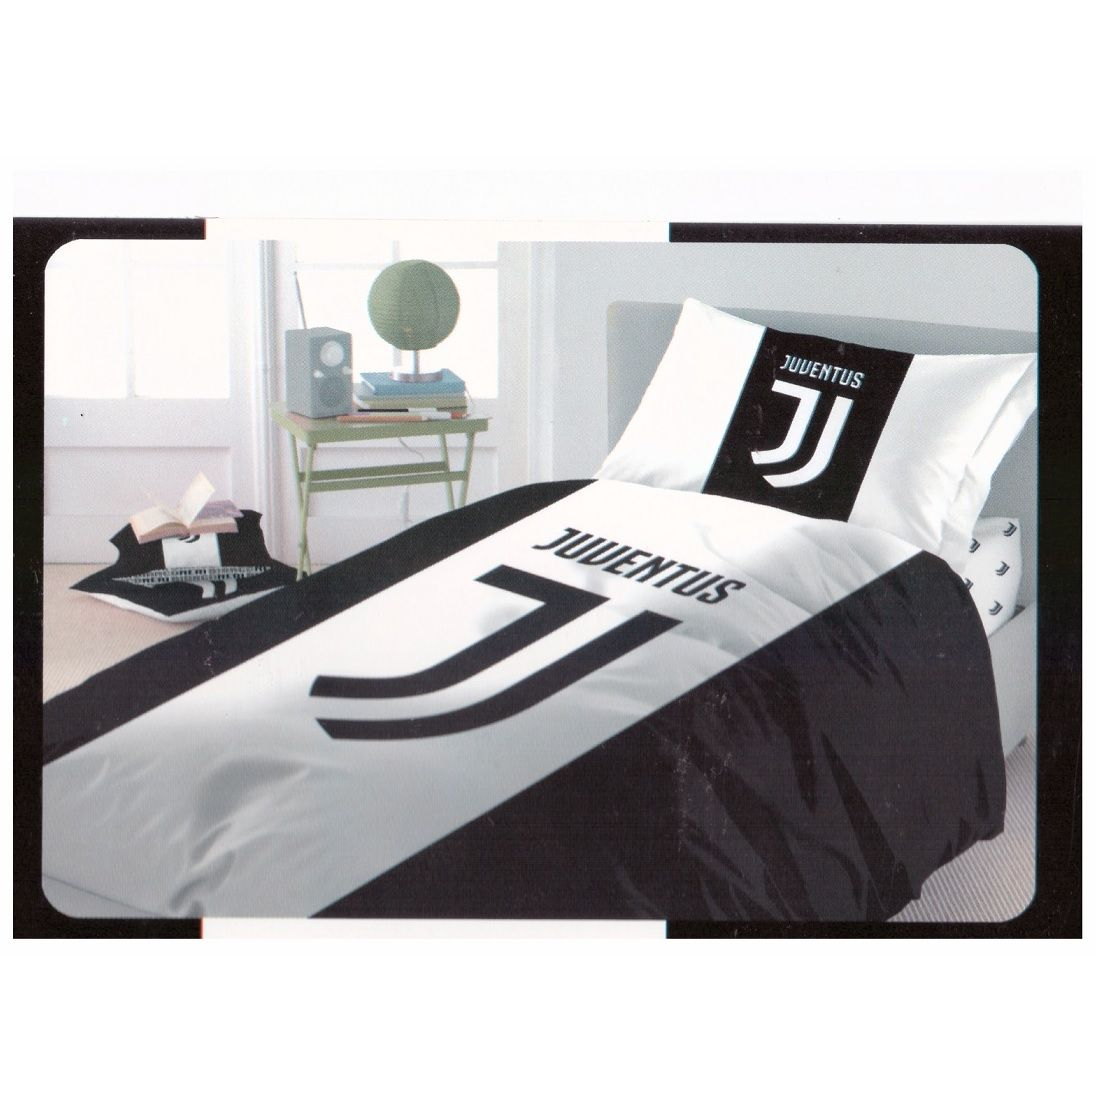 Lenzuola Juventus Completo Letto Singolo Ufficiale FC Juventus Nuovo Logo